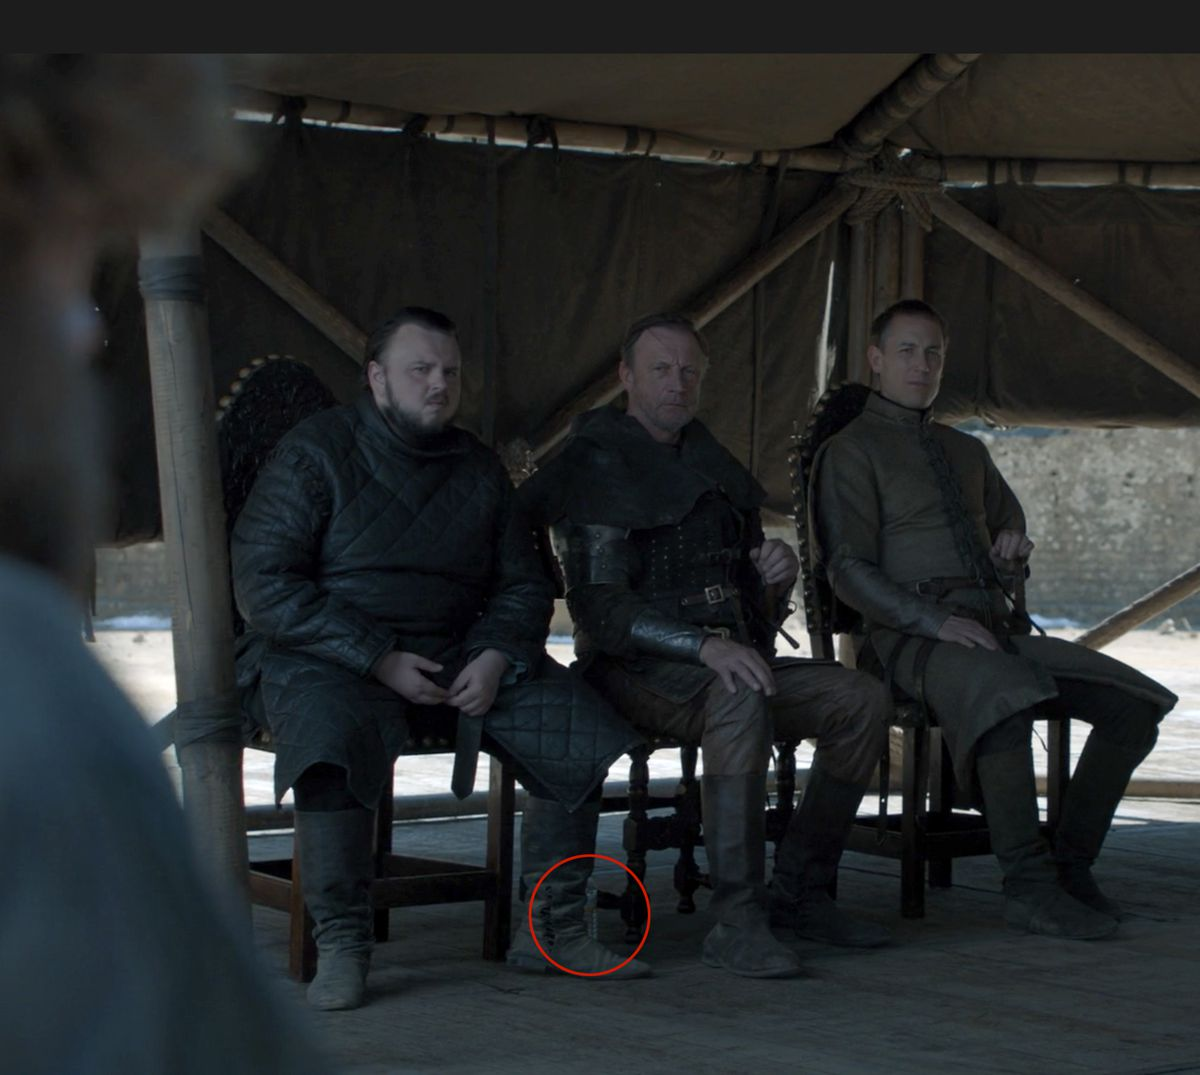 dc42e6f43f Game of Thrones' water bottle mistake stole the series finale - Vox